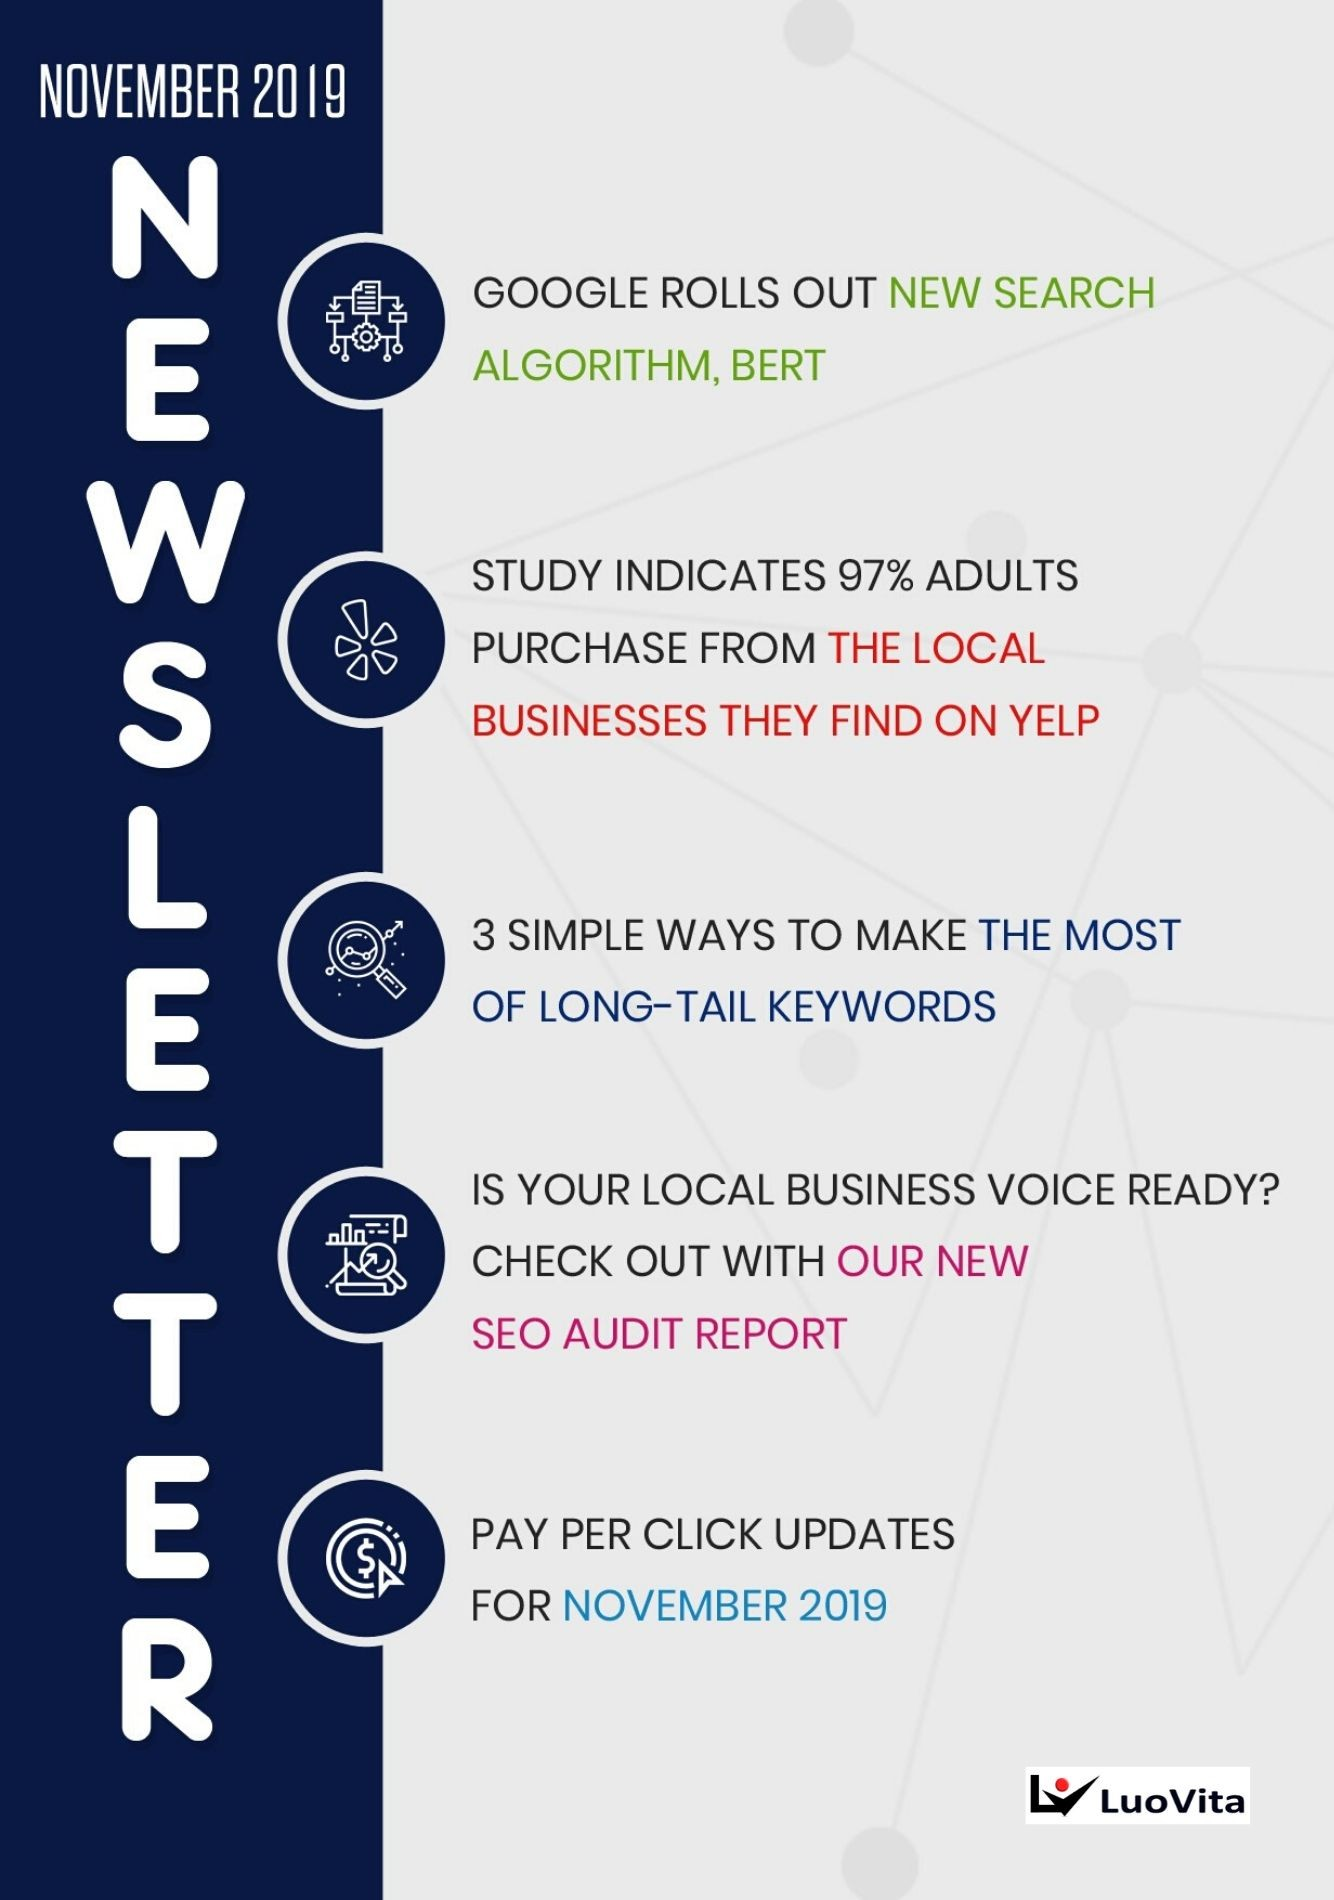 November 2019 Newsletter, GOOGLE ROLLS OUT NEW SEARCH ALGORITHM, BERT, STUDY INDICATES 97% ADULTS PURCHASE FROM THE LOCAL BUSINESSES THEY FIND ON YELP, 3 SIMPLE WAYS TO MAKE THE MOST OF LONG-TAIL KEYWORDS, IS YOUR LOCAL BUSINESS VOICE READY? CHECK OUT WITH OUR NEW SEO AUDIT REPORT, PAY PER CLICK UPDATES FOR NOVEMBER 2019, how to market business effectively, how to compete with big companies through SEO, search engine optimization, profitable online business 2020, money making ideas 2020, profitable business in 2020, how to market business online in 2020, best marketing courses, online marketing articles, online marketing courses, online business idea, keyword research tool free, ow to start online marketing, social media marketing, facebook marketing, instagram marketing, what is smo, smo tools, social media campaign ideas, website traffic checker, facebook ads, instagram ads, auto likes free, how can i get facebook likes, how to increase facebook likes, how to promote in facebook,